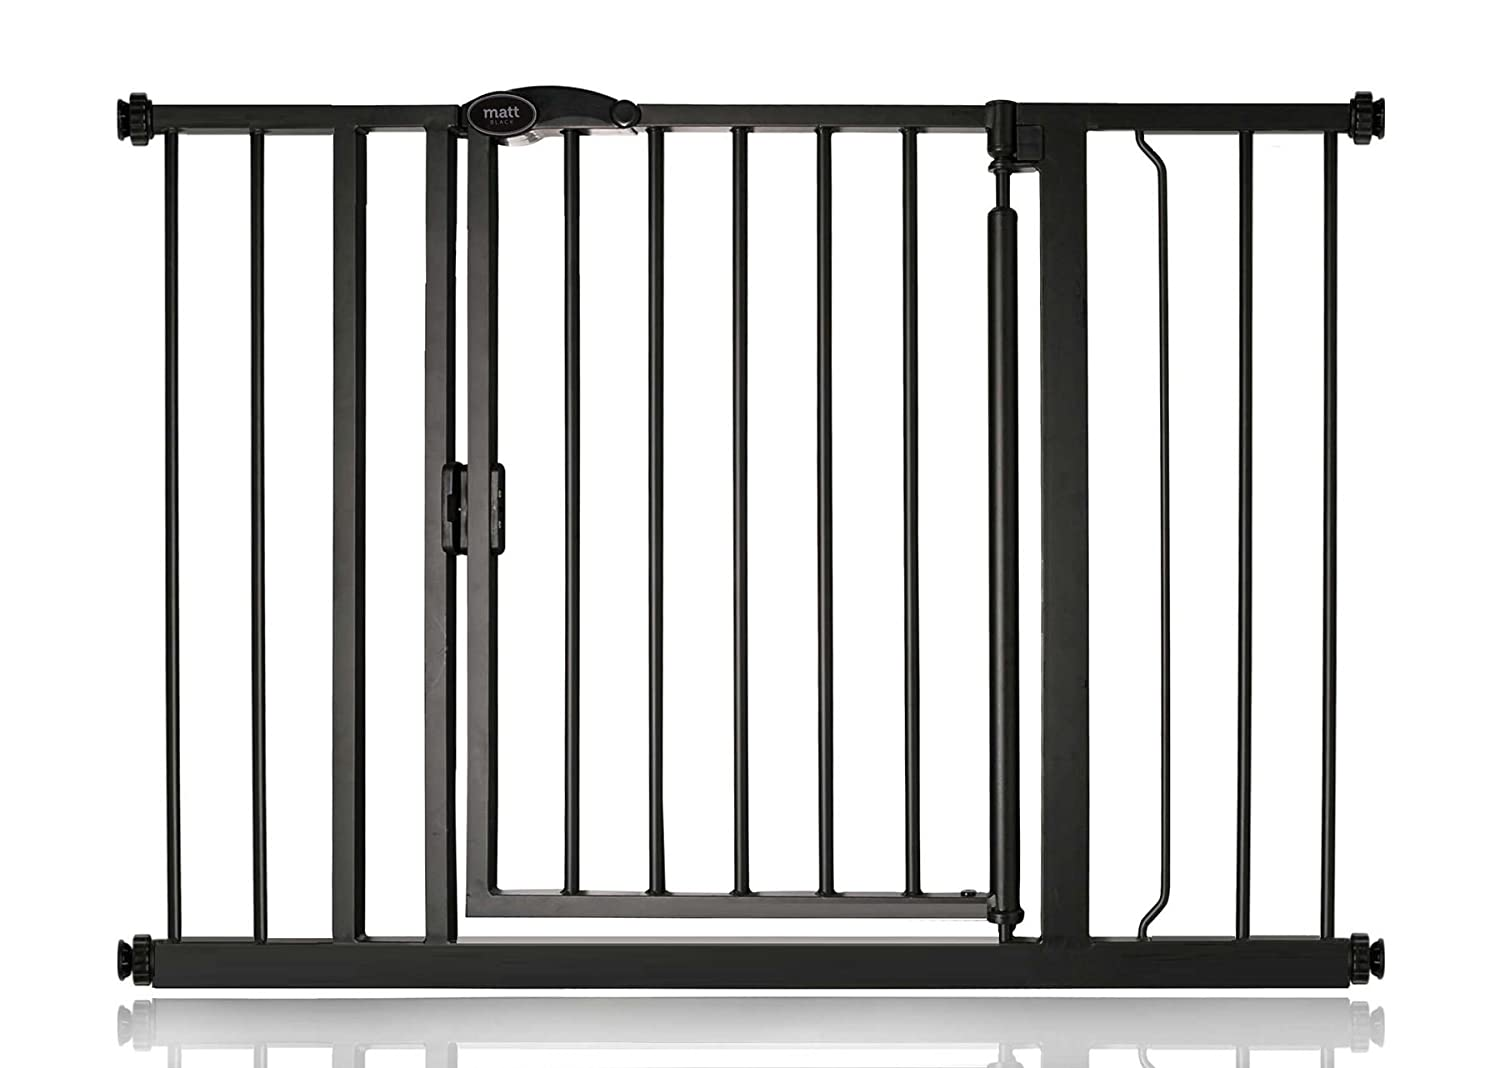 103.8cm110.8cm Bettacare Auto Close Matt Black Pet Gate Range (103.8cm110.8cm)